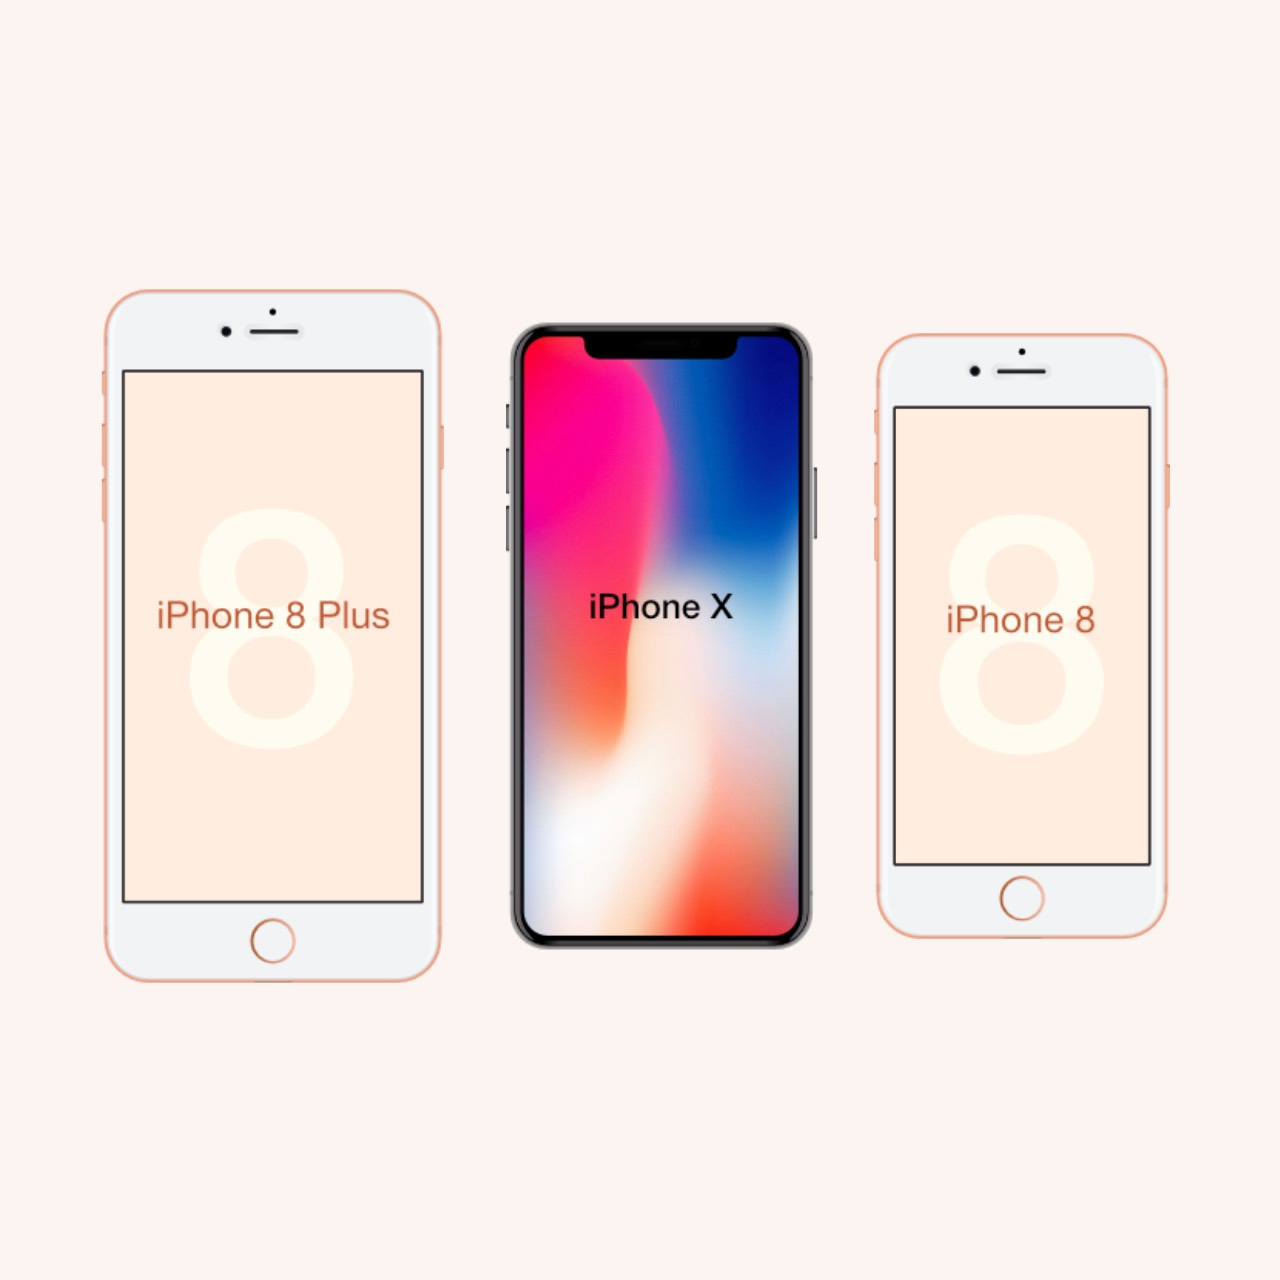 newest iphone out try out the new iphone 8 and iphone x sizes in real 12706